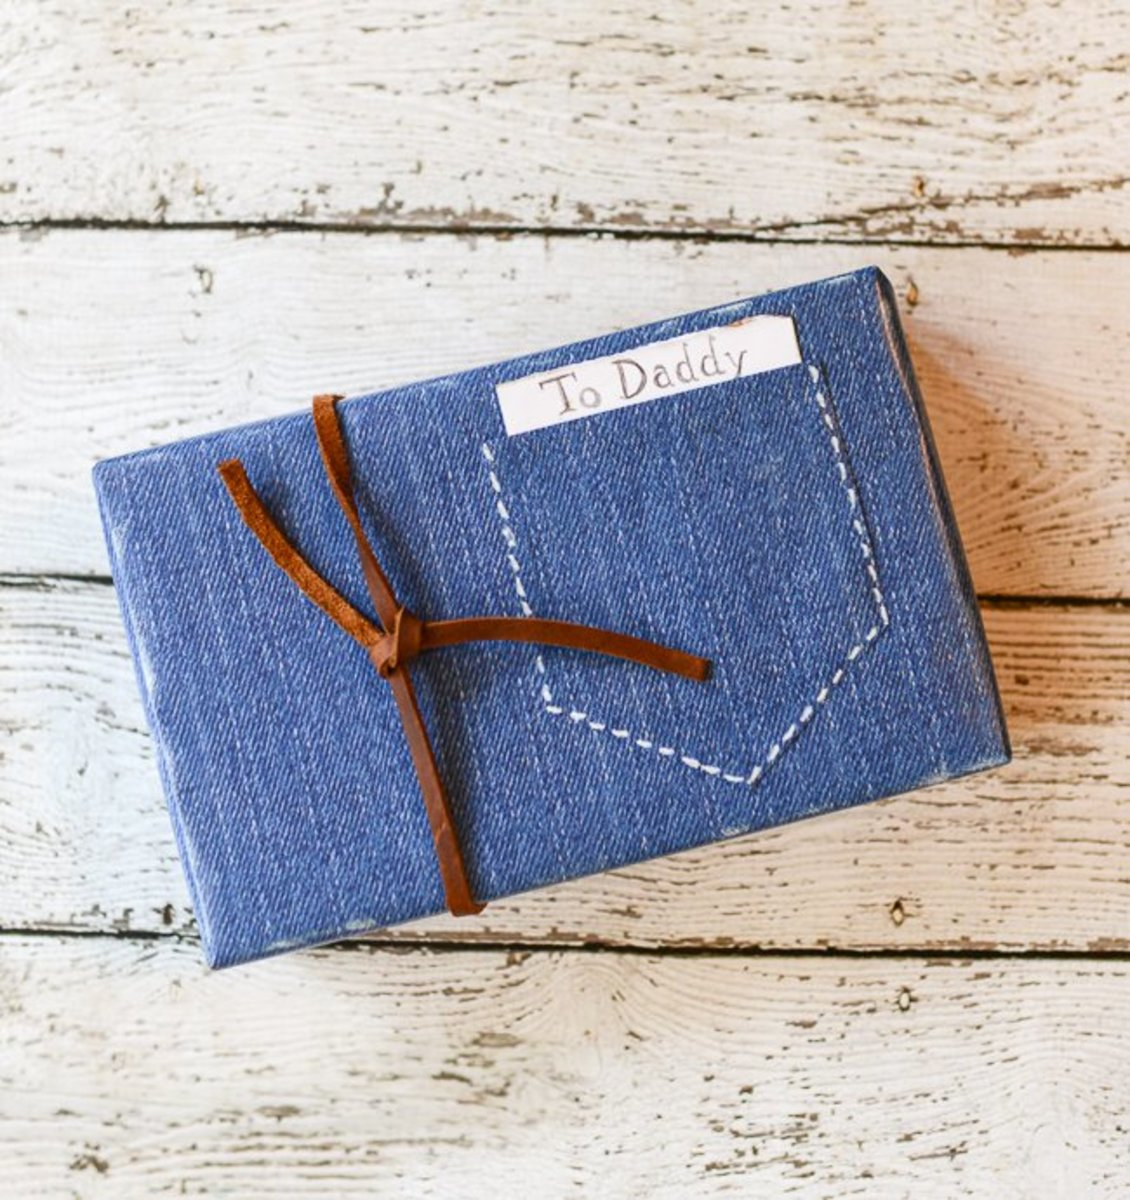 Father's Day gift wrapped in denim paper with leather twine.